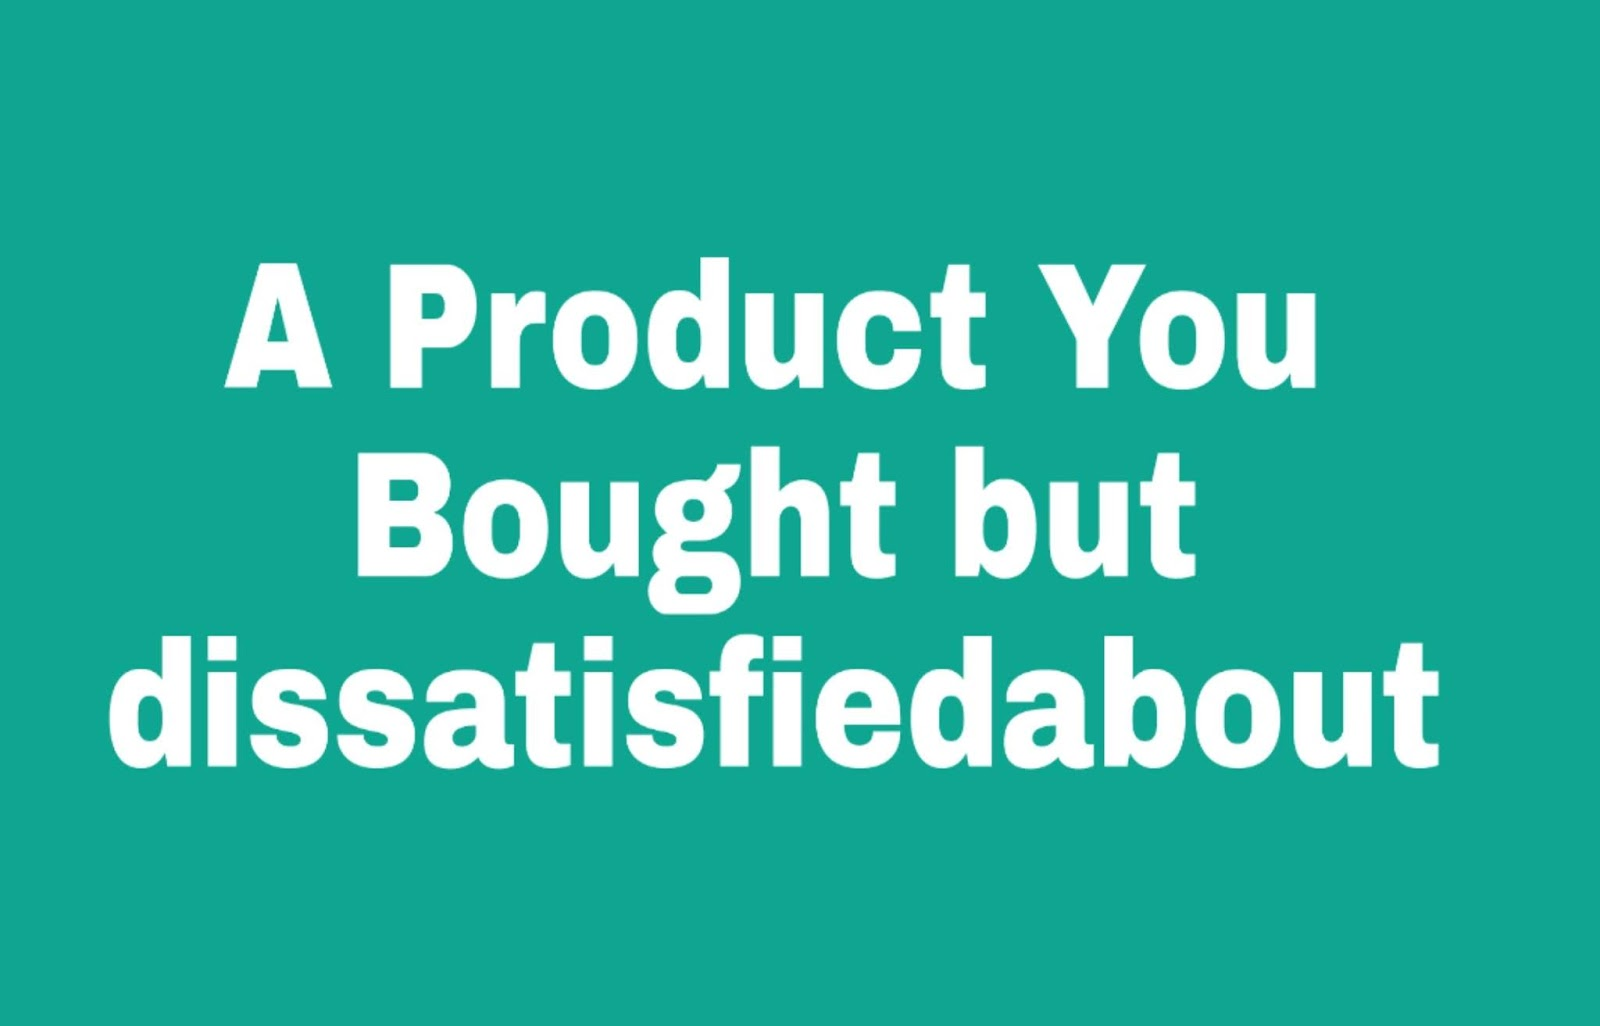 Cue-card: A Product You Bought But dissatisfied about